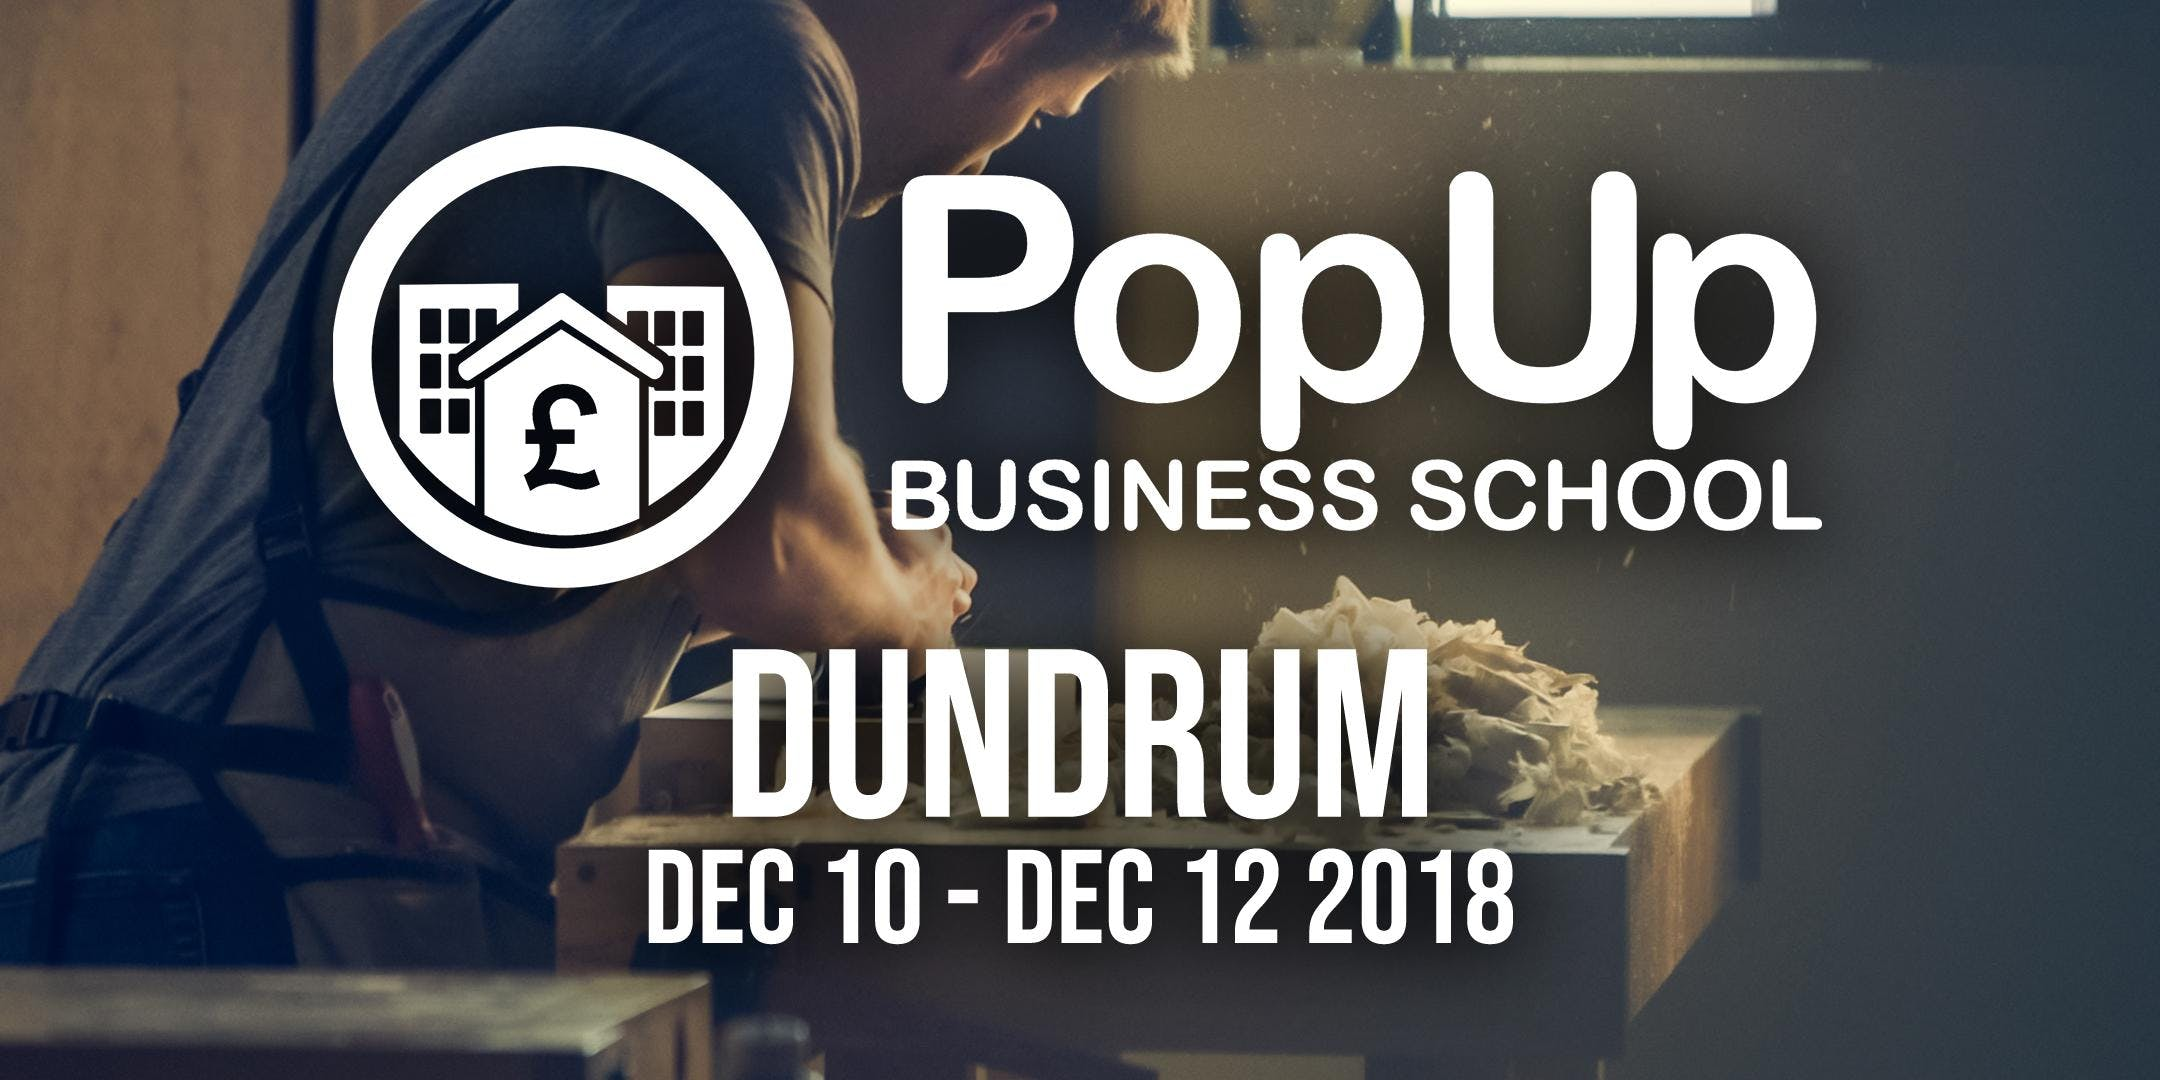 Dundrum  - PopUp Business School | Making Money From Your Passion